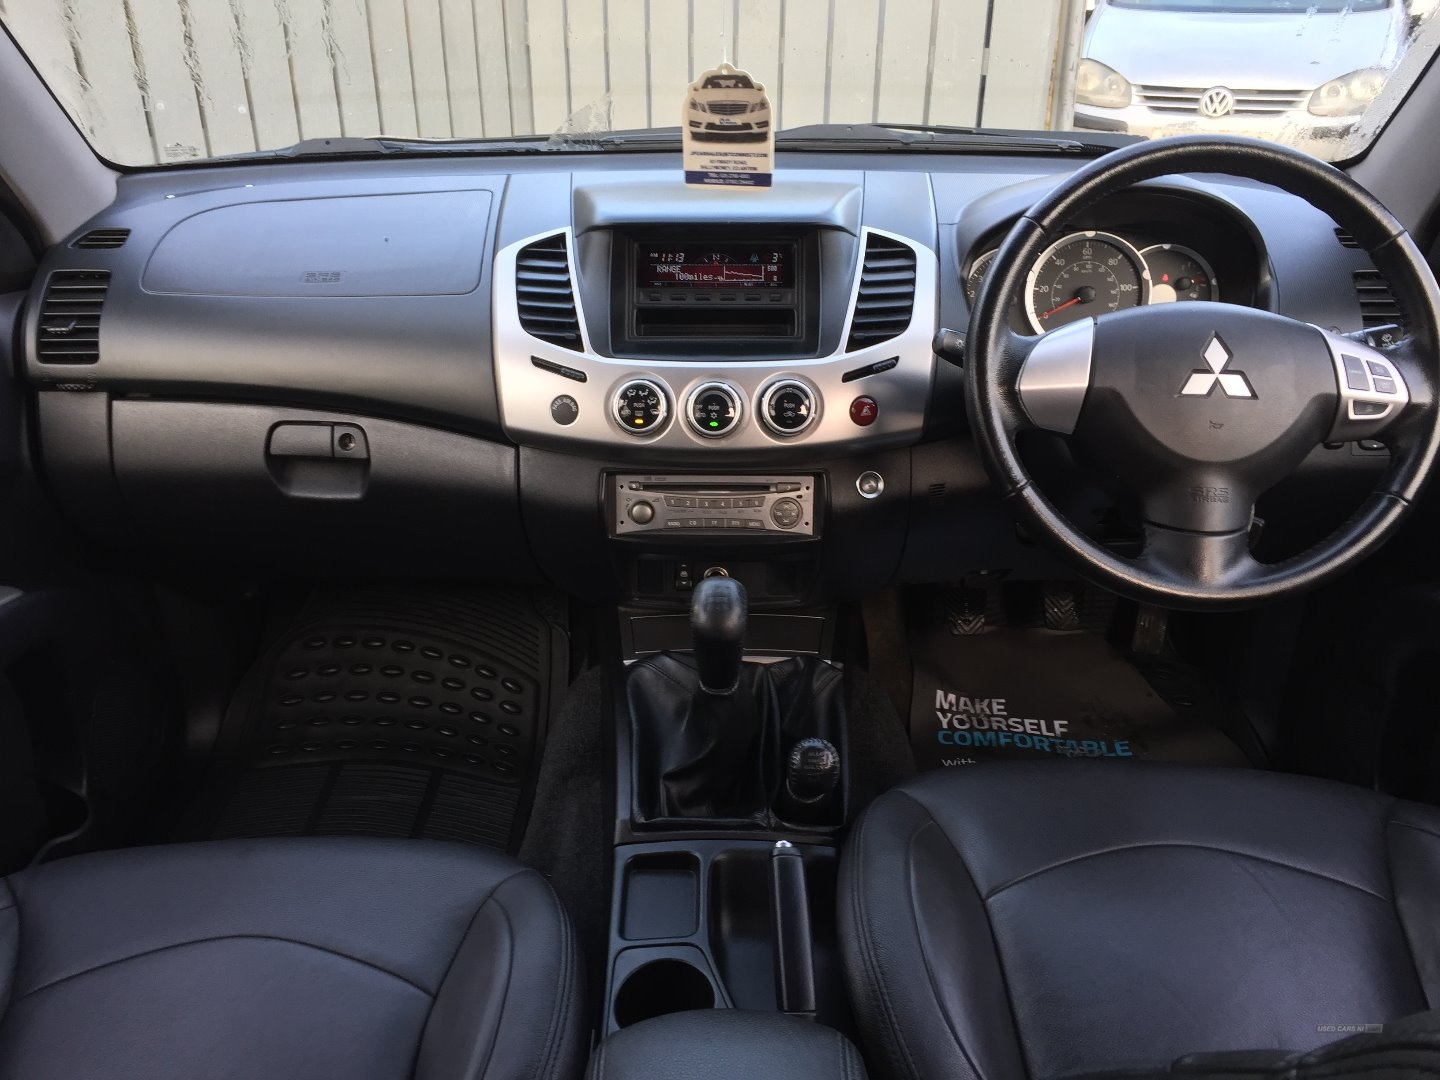 2015 Mitsubishi L200 Double  Cab  DI-D  Challenger  4WD Diesel Manual  – JF Car Sales Ballymoney full